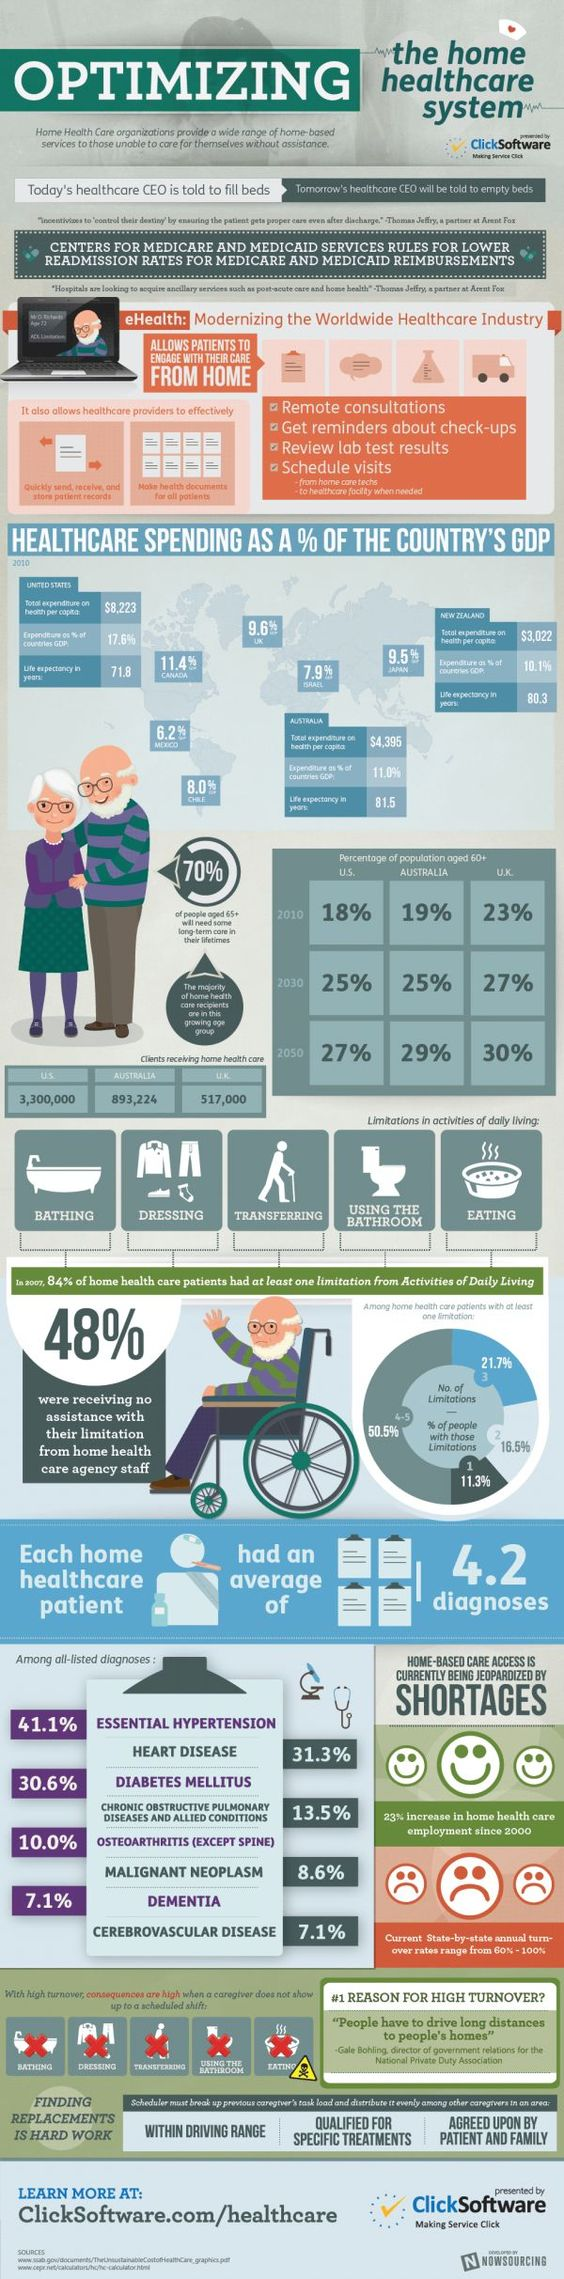 Infographic: See how #eHealth aids in home health care #telehealth